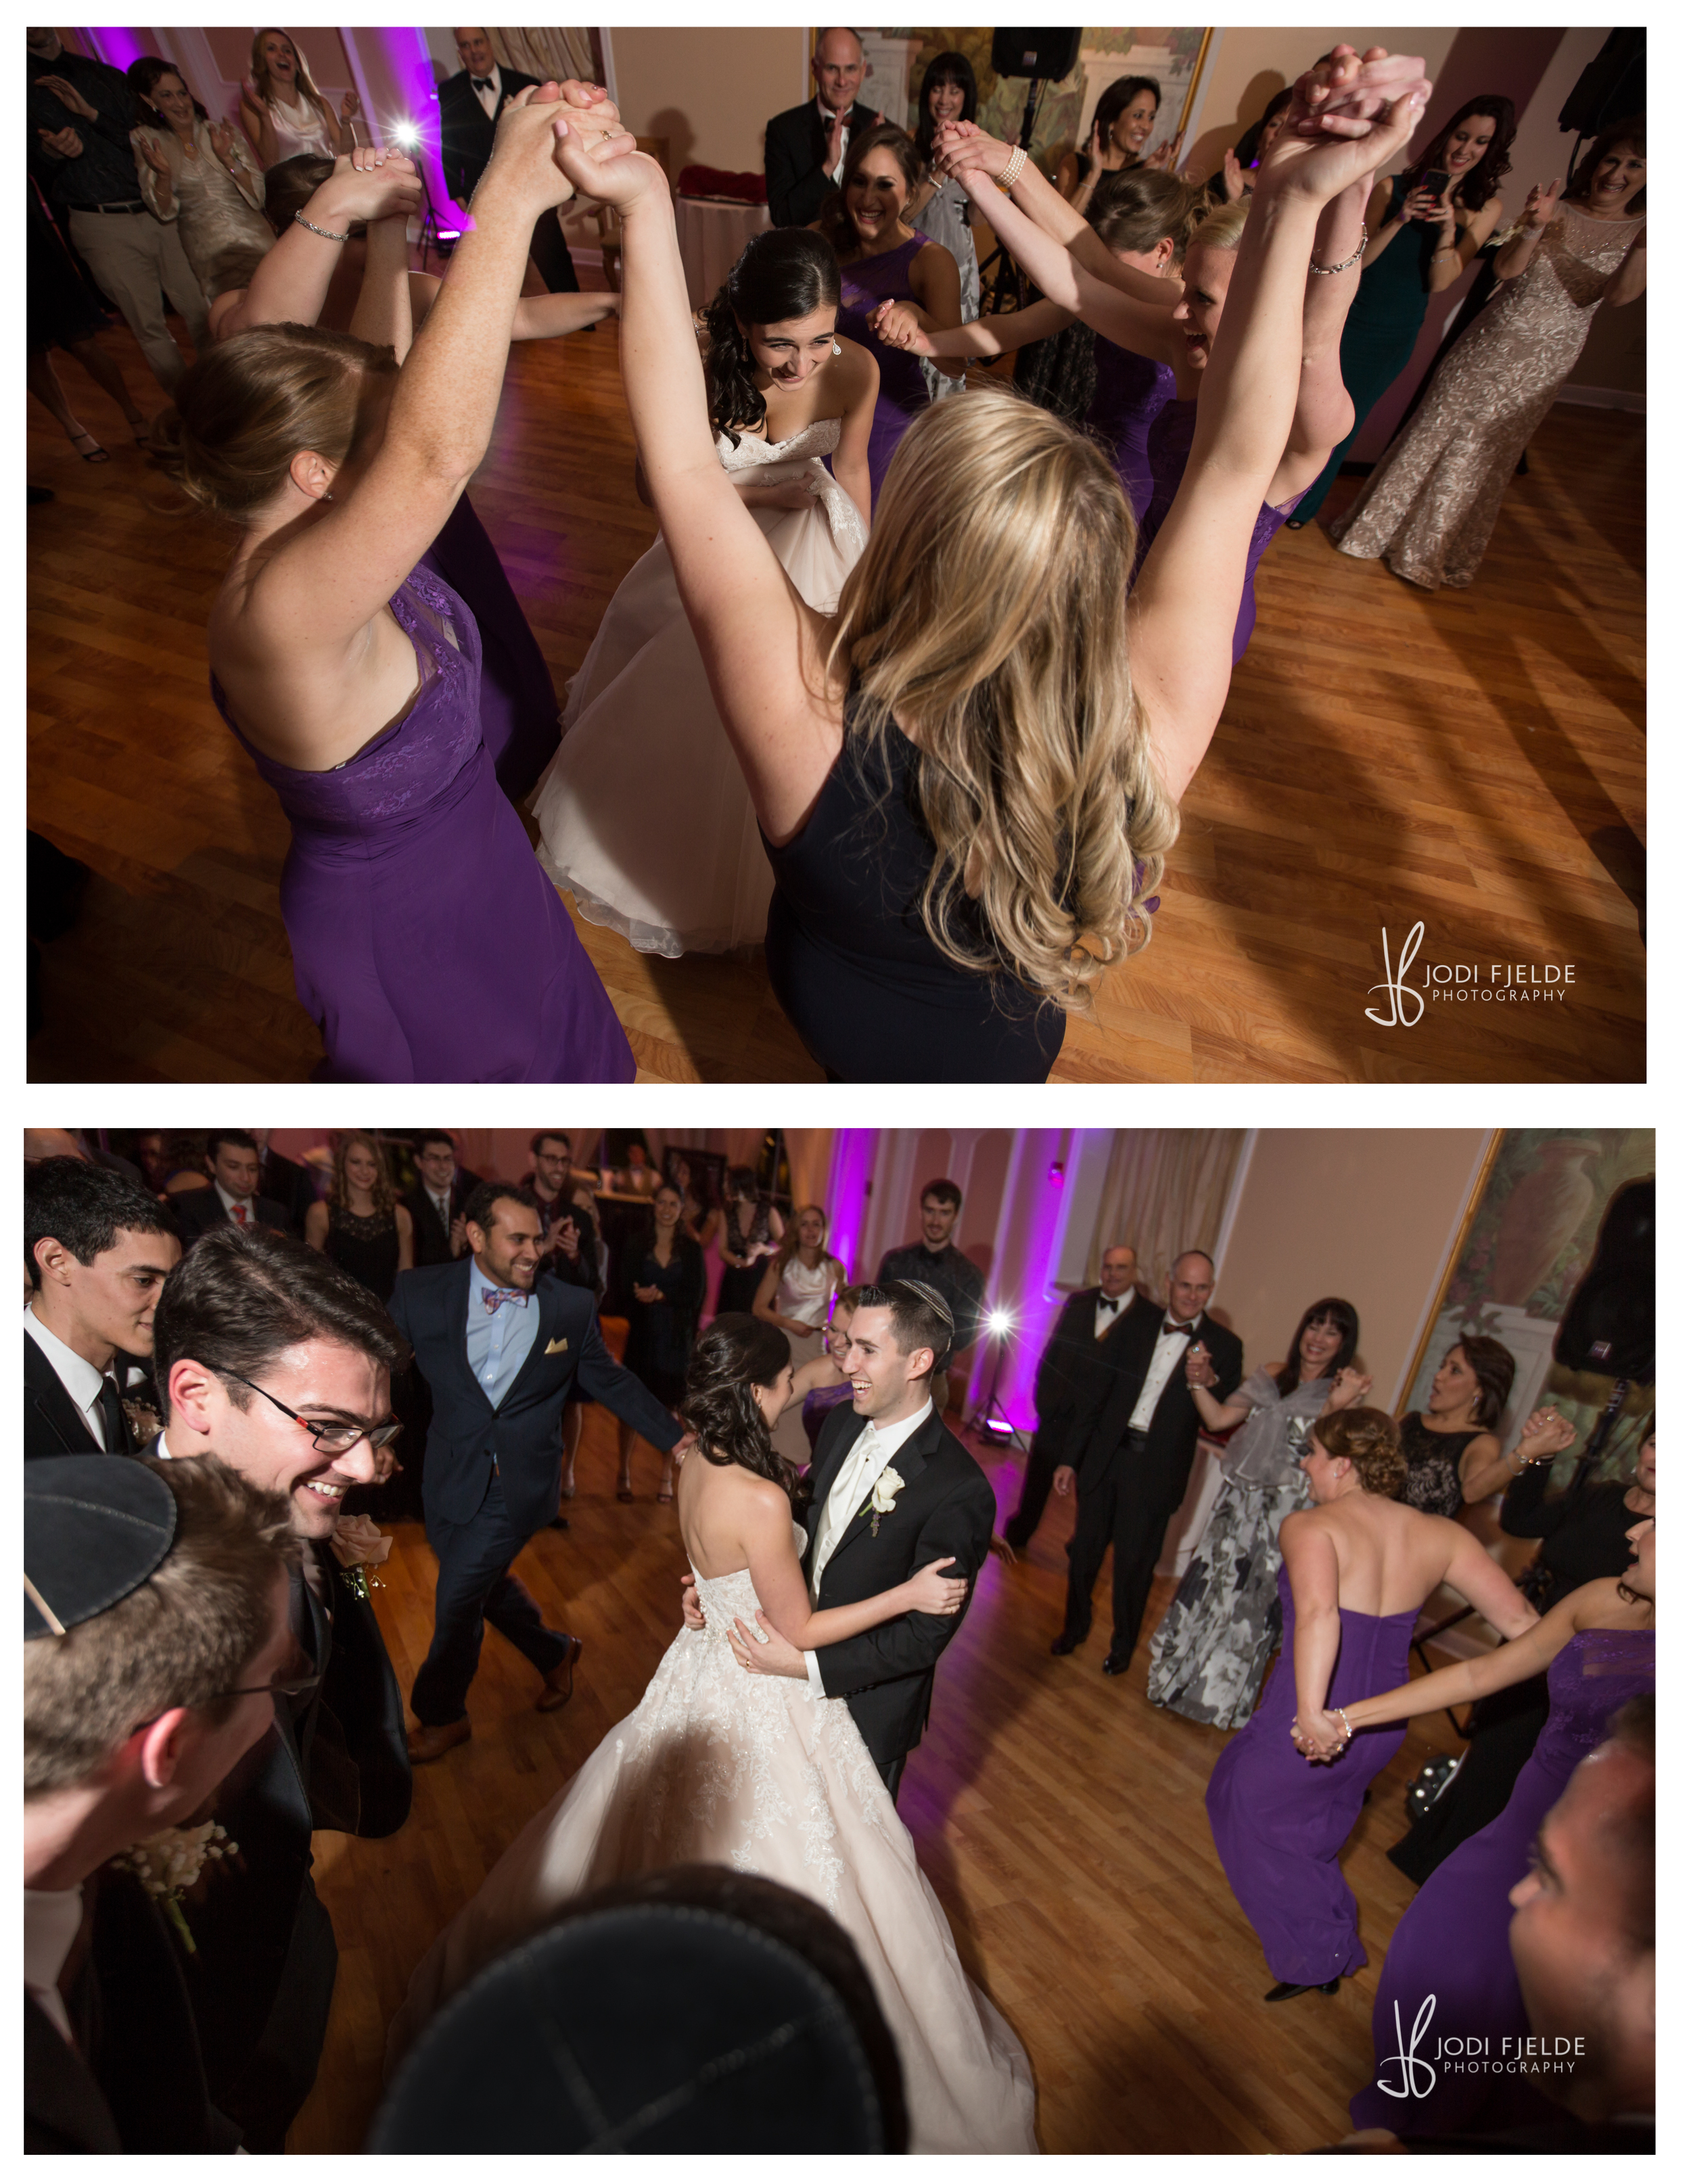 Benvenuto_Palm_Beach_Wedding_Jewish_Michelle & Jason_Jodi_Fjedle_Photography 55.jpg